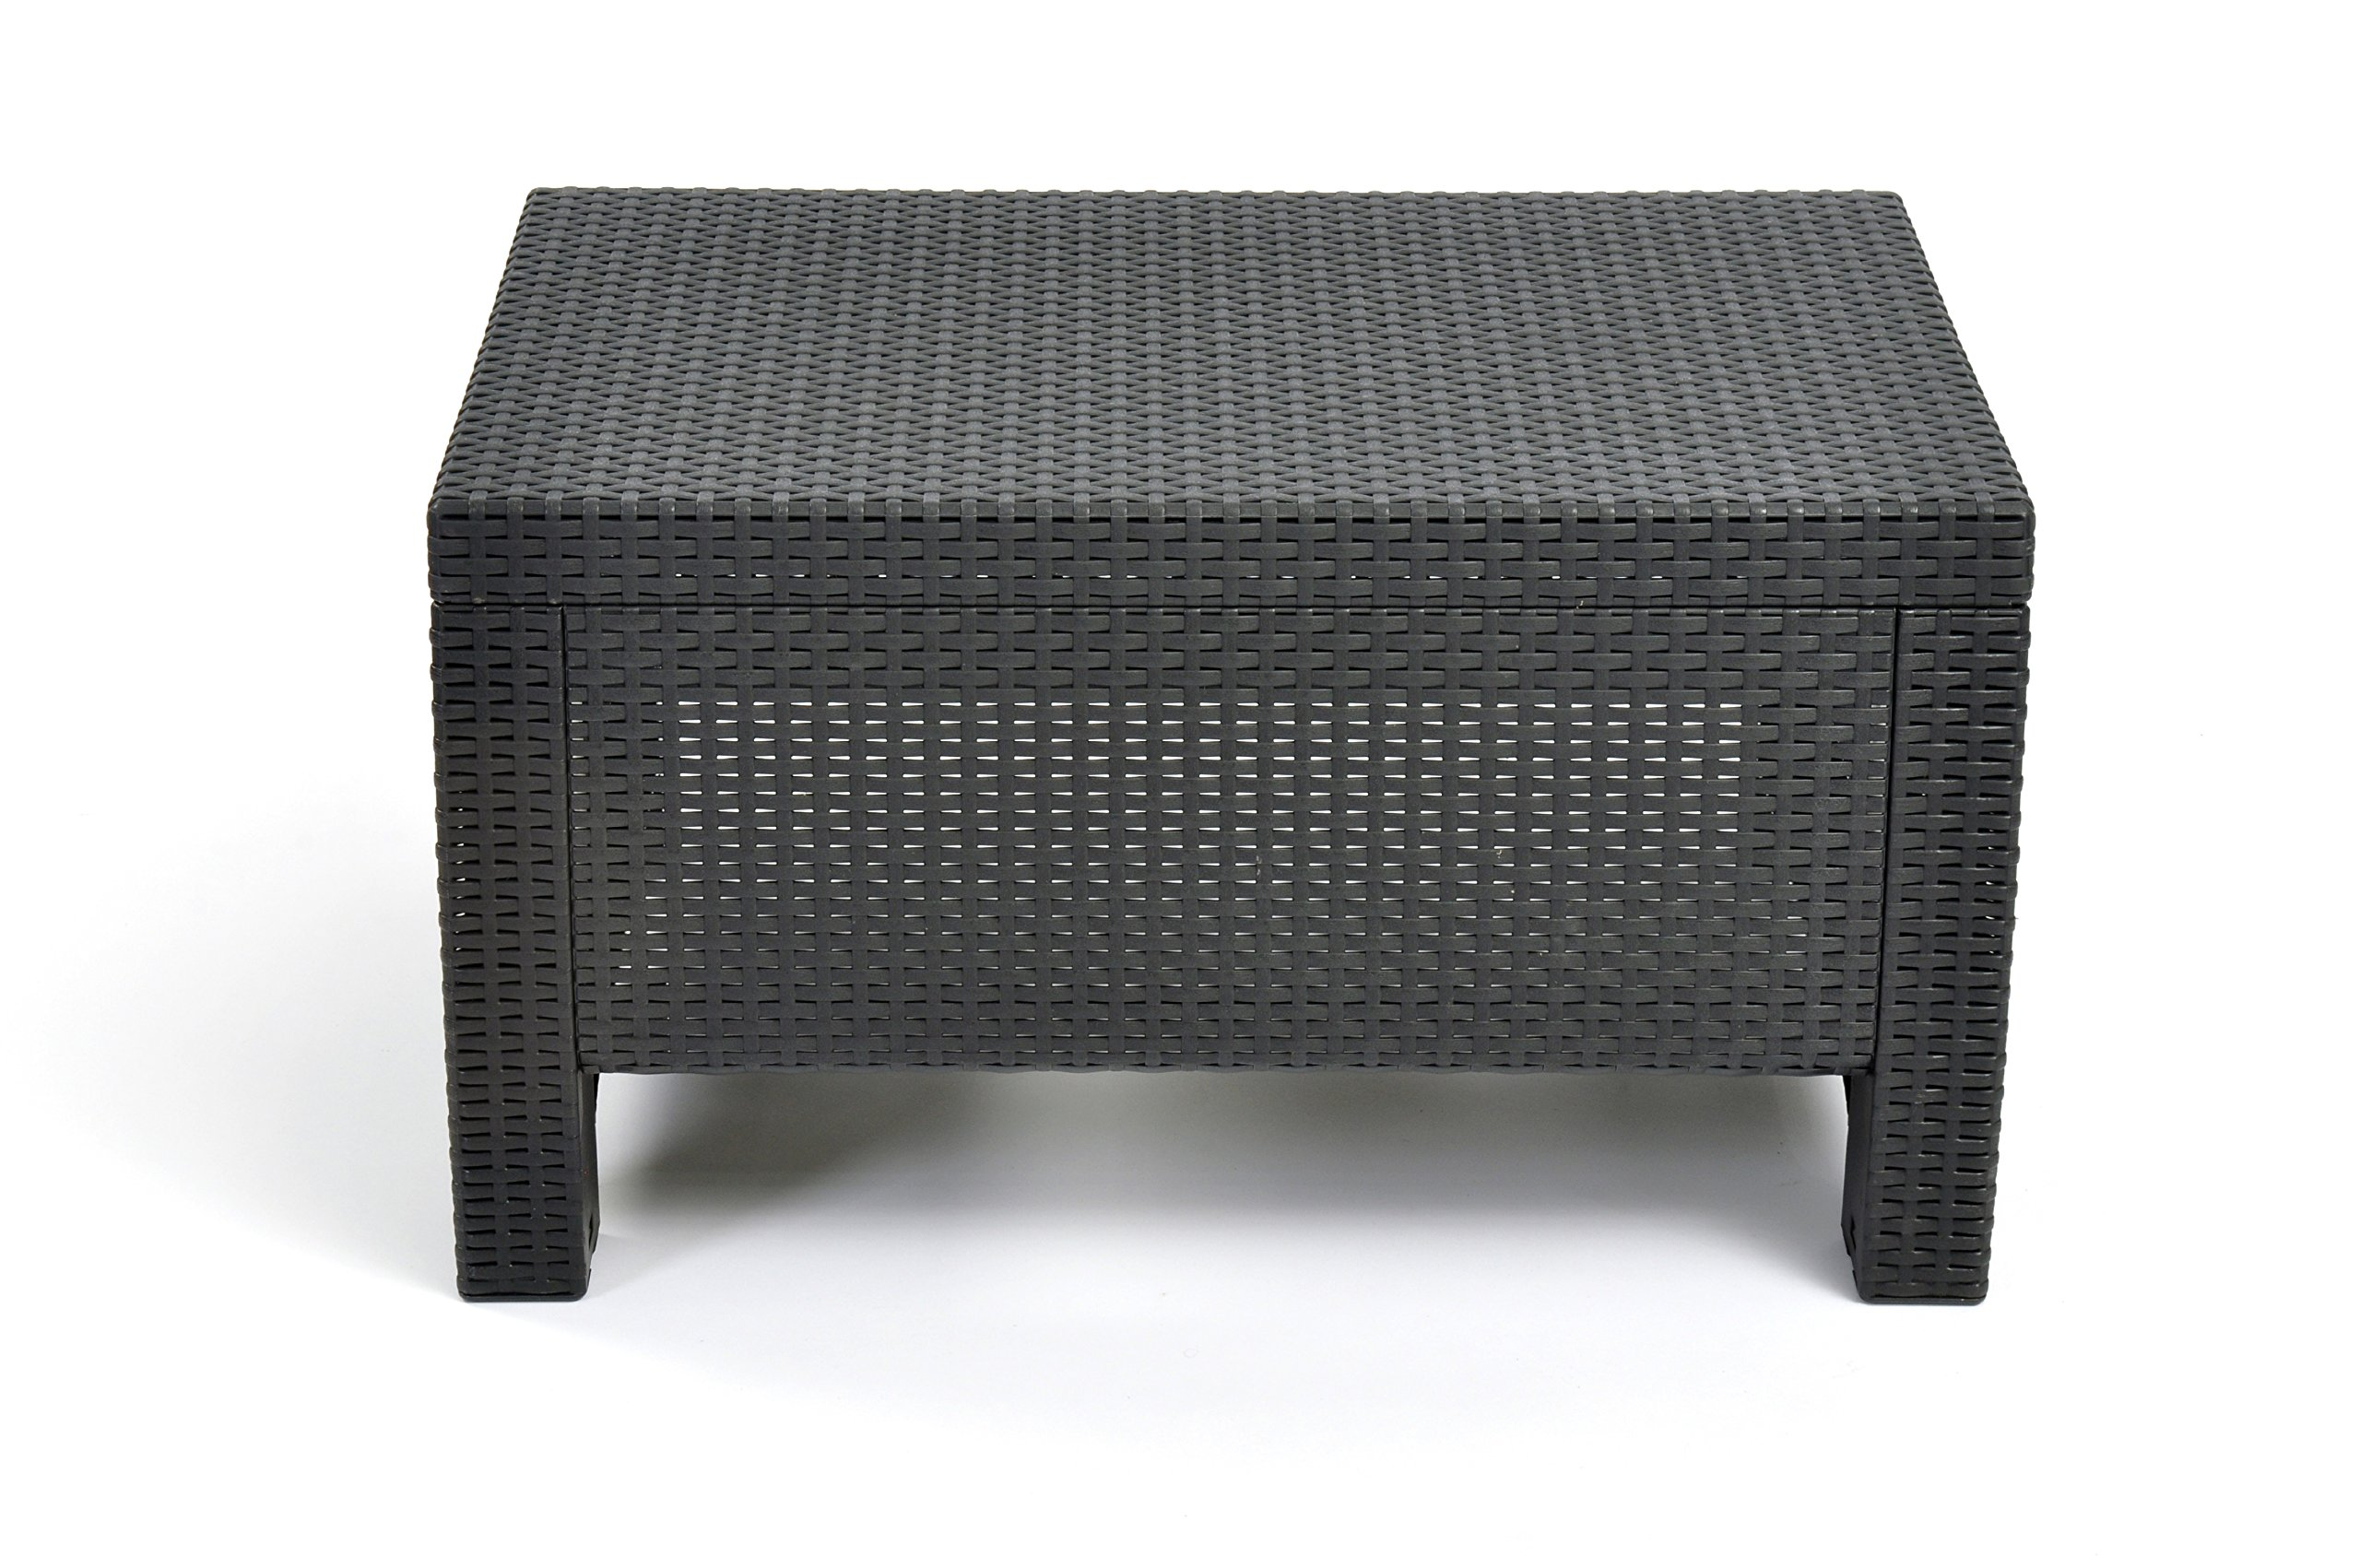 Keter Corfu Coffee Table Modern All Weather Outdoor Patio Garden Backyard Furniture, Charcoal